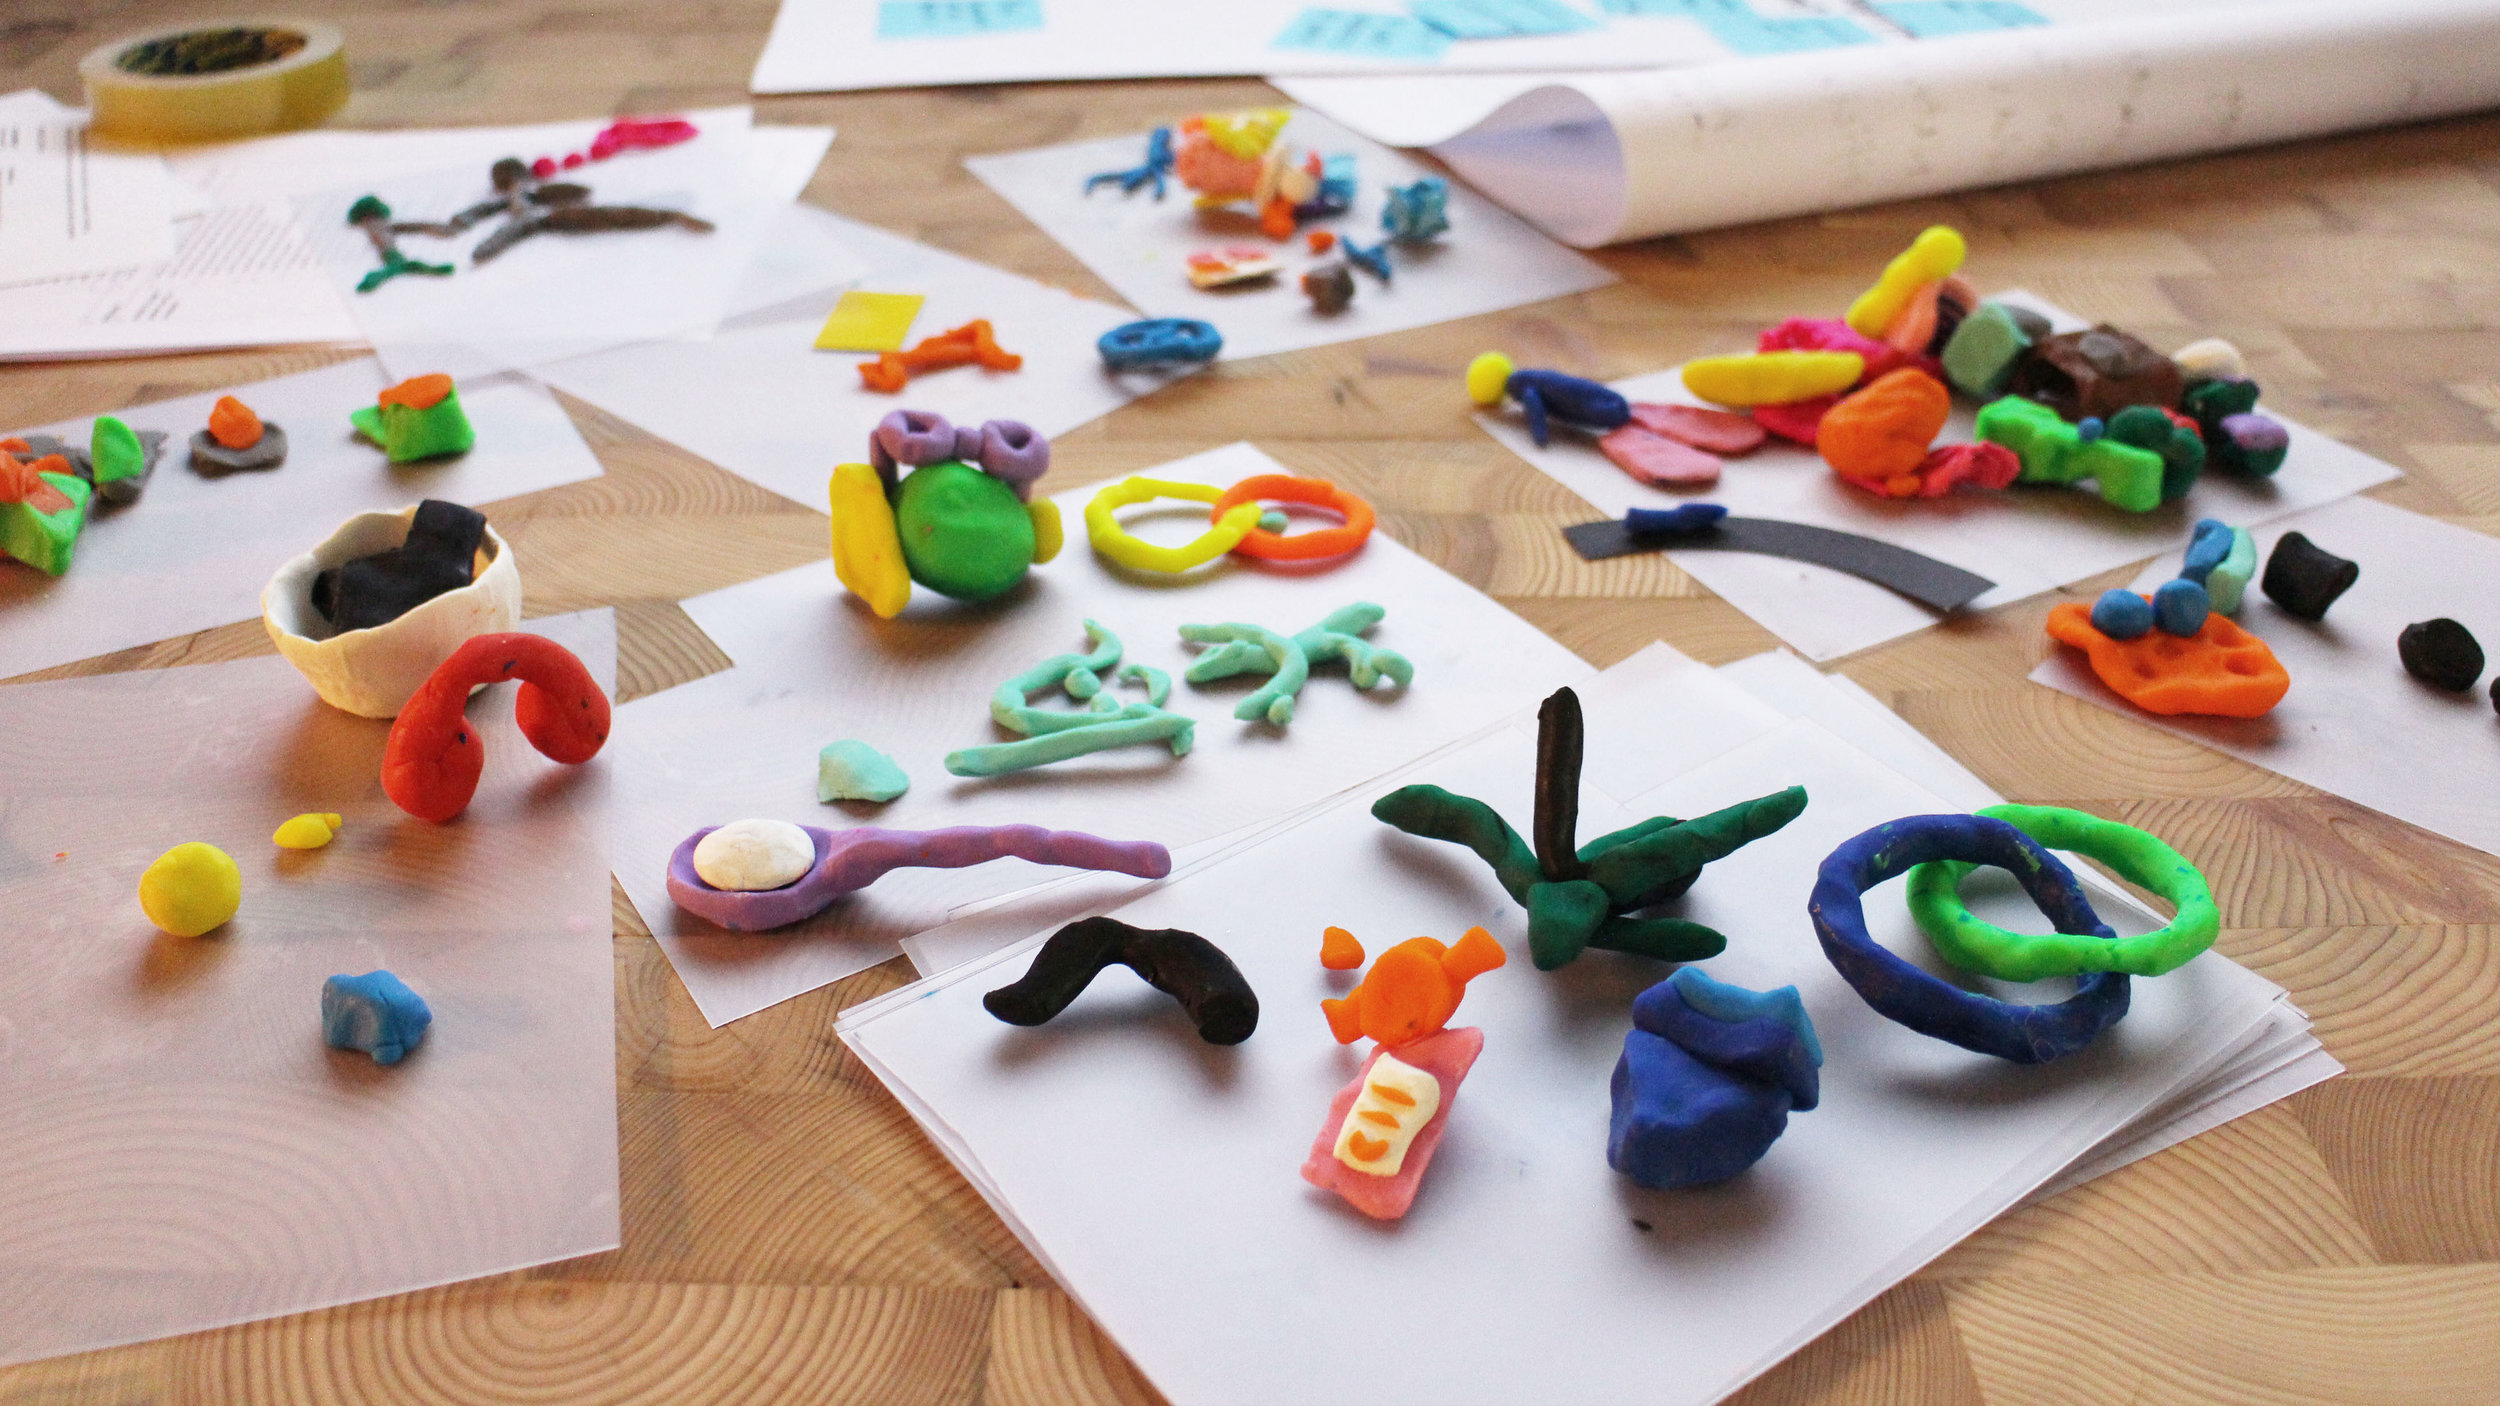 The icebreaker - personality playdoh - an amazing selection of sculptures inspired by each others SUPERstrengths